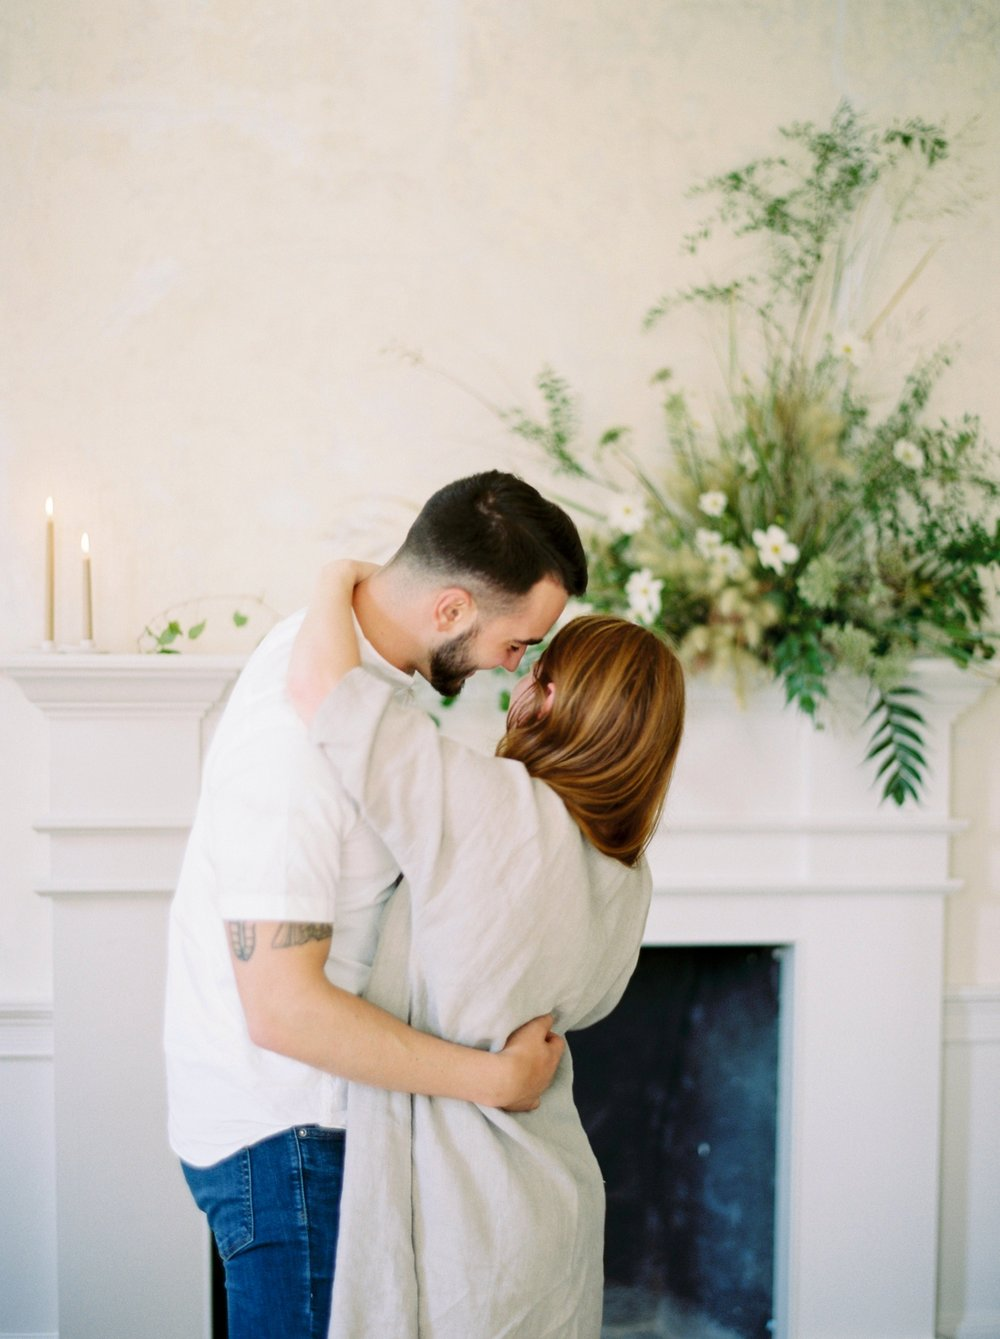 Charleston wedding photographer | anniversary session | fine art film photography | Calgary Wedding Photographers | Calgary couples photographer | Justine Milton Photography | couples photography |